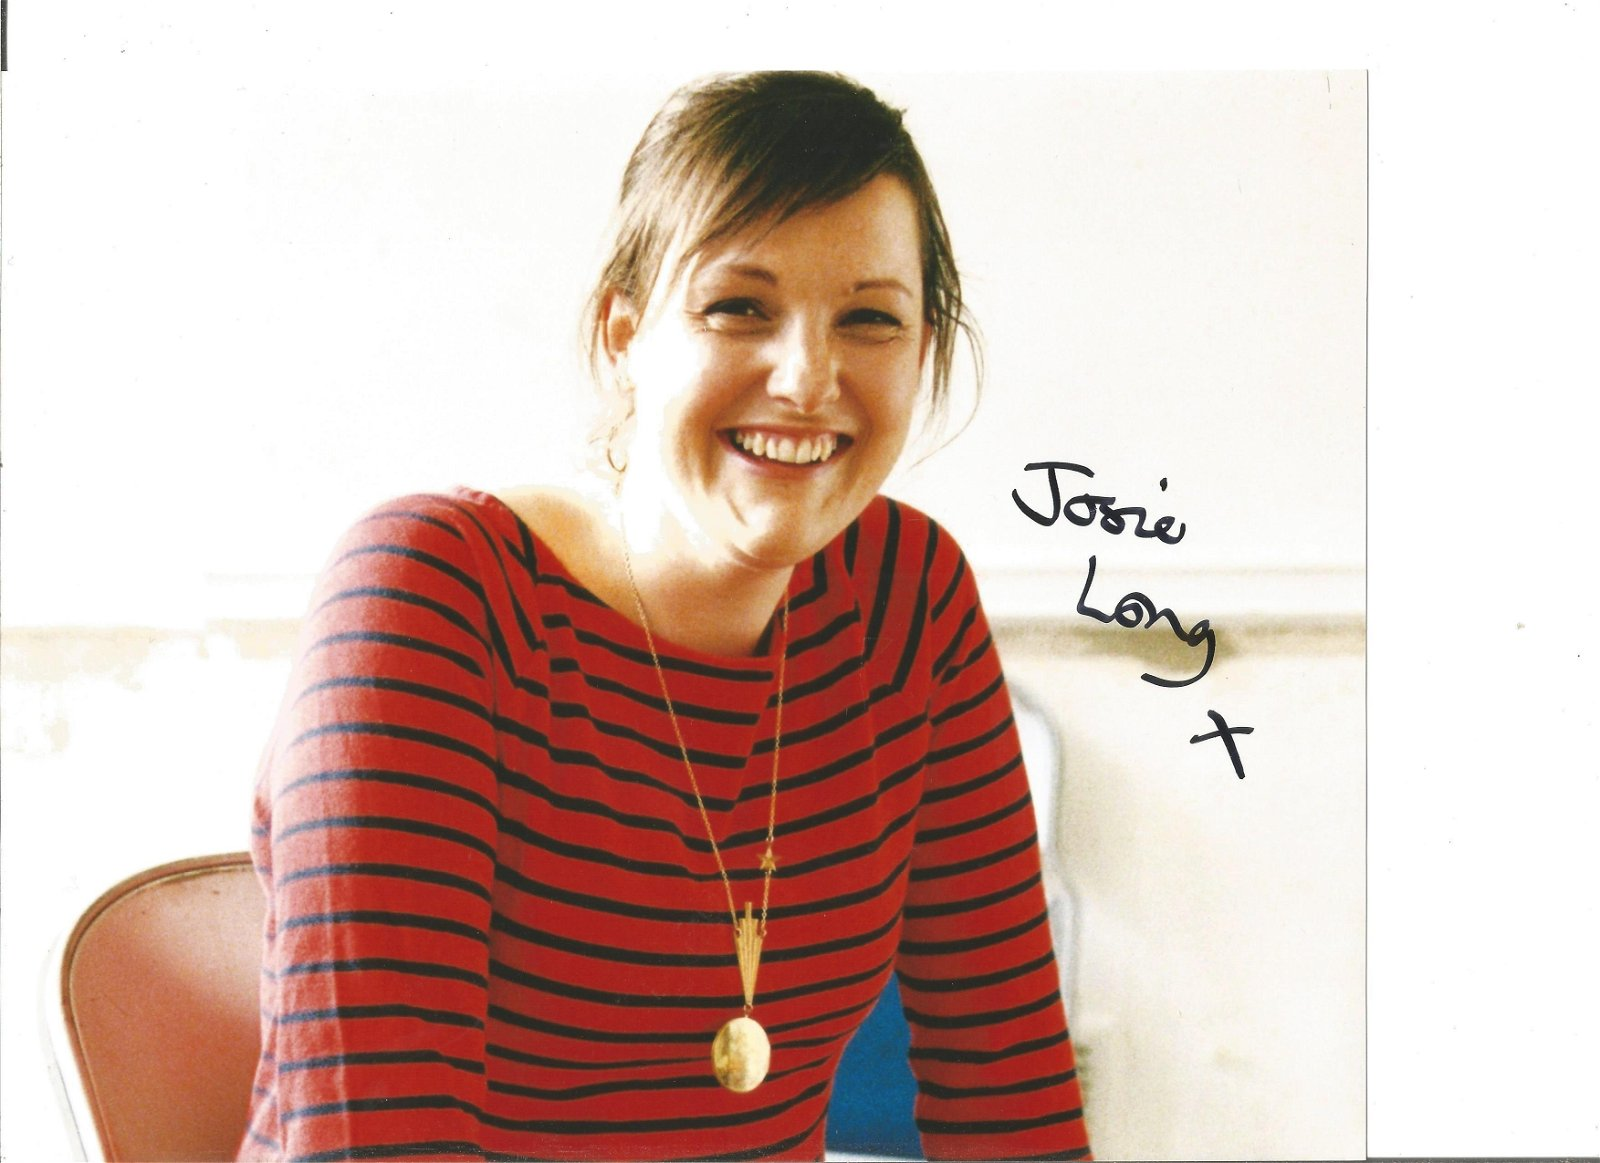 Josie Long Actress Signed 8x10 Photo. Good Condition.